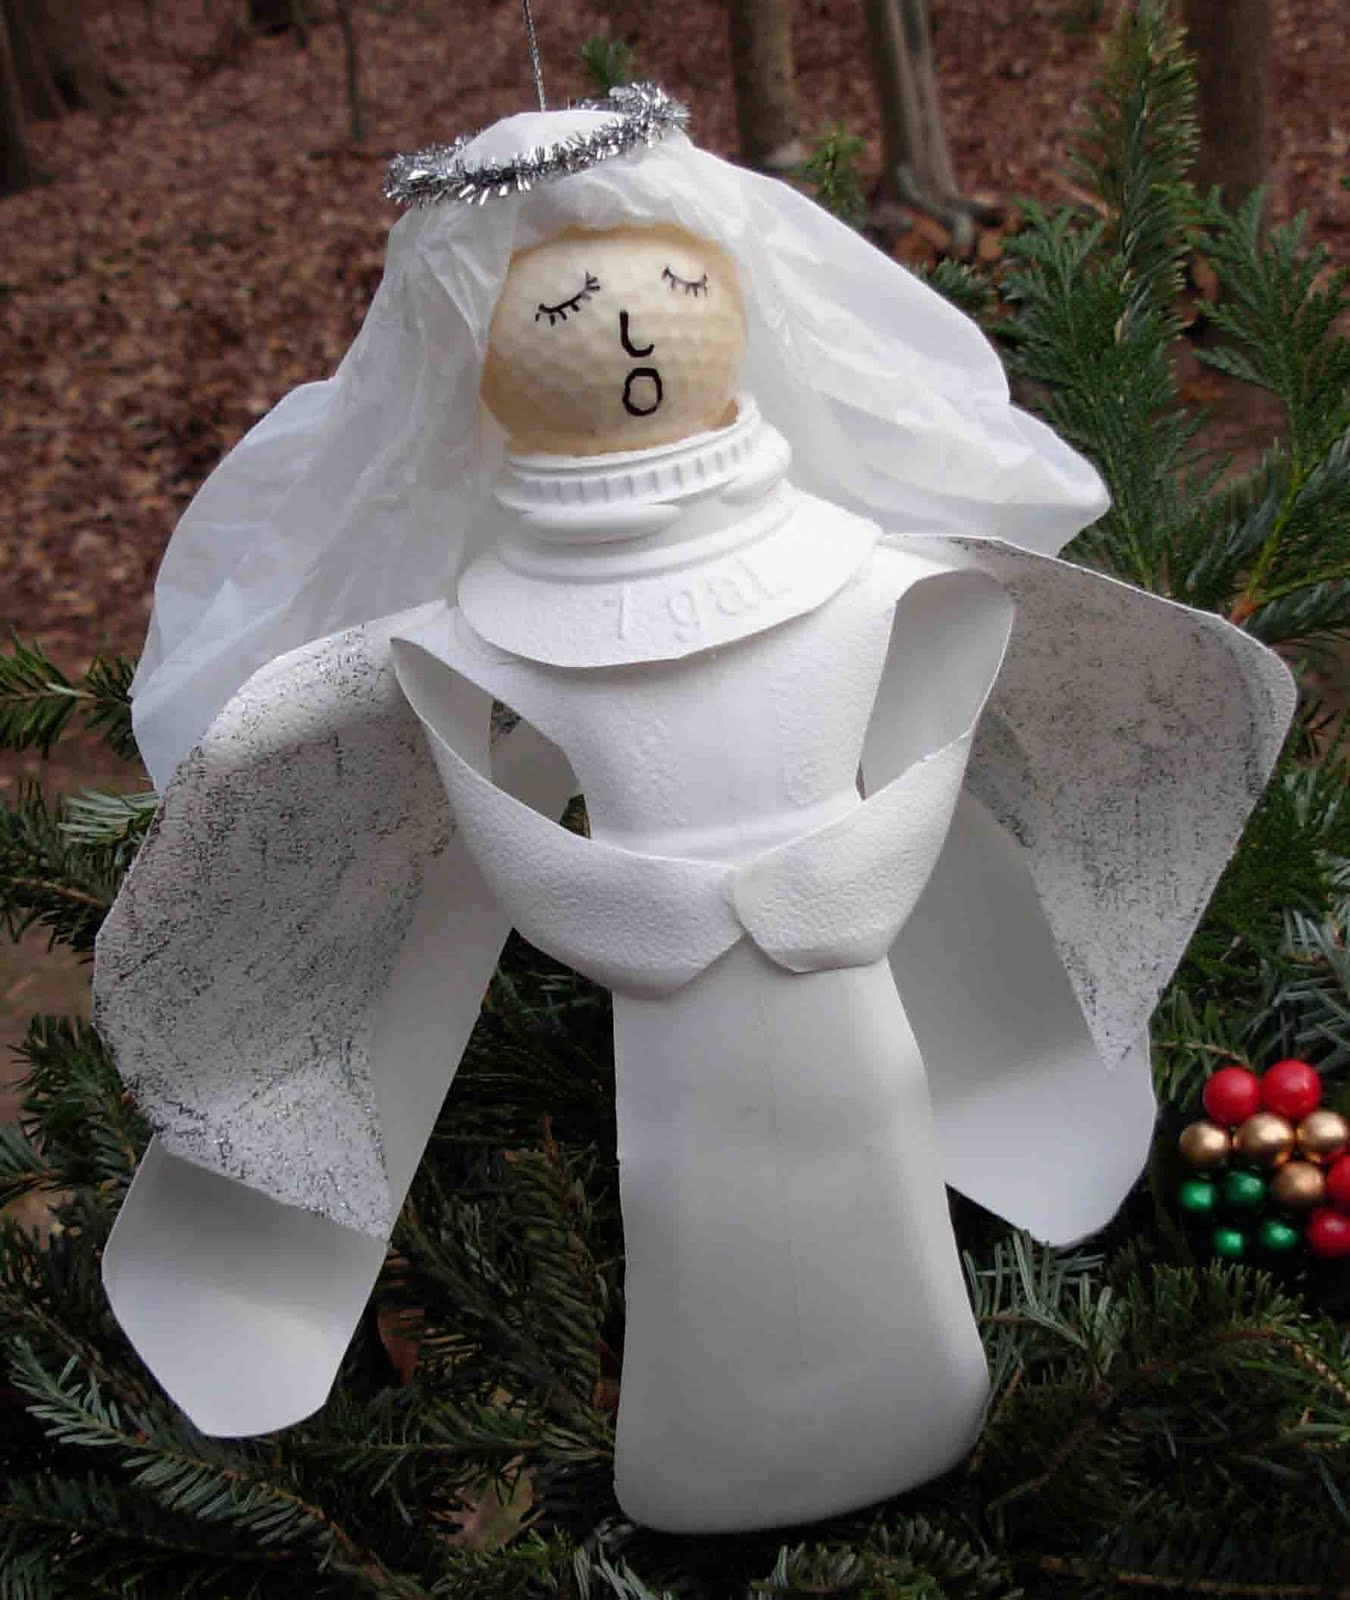 Crack of dawn crafts recycled milk jug angel craft for Christmas crafts with milk cartons